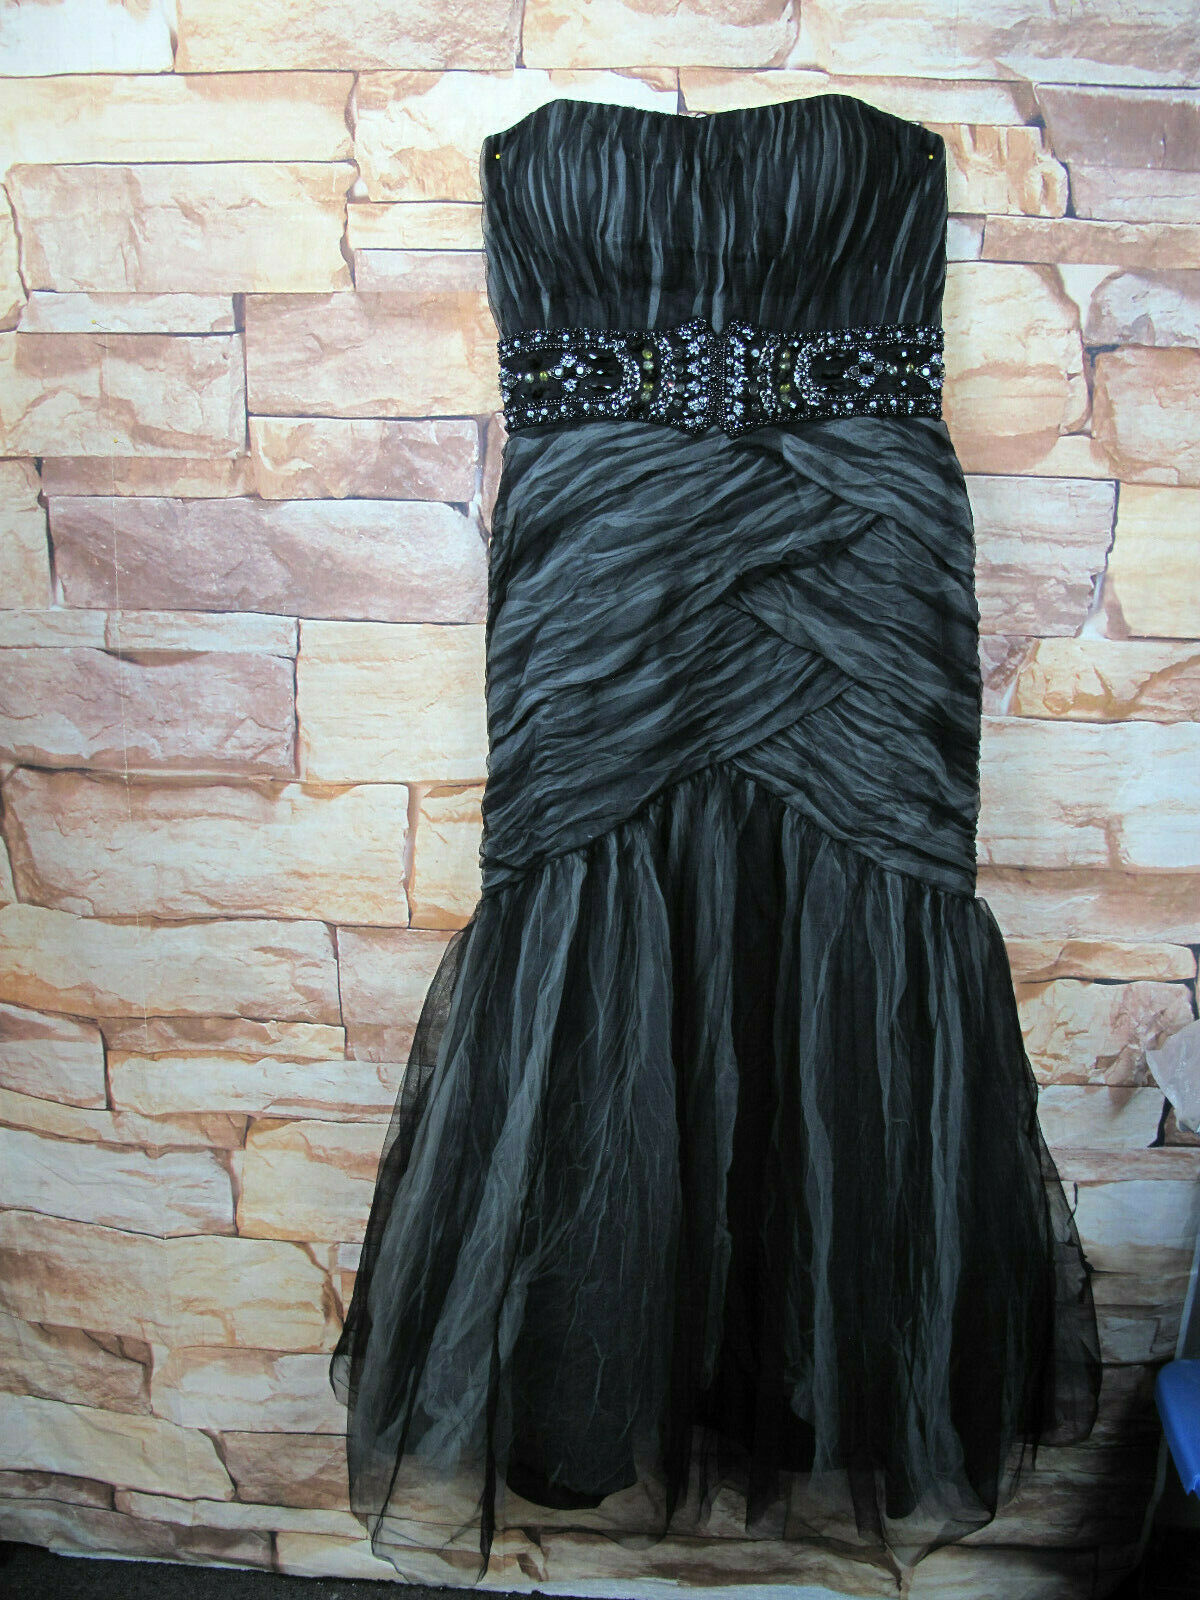 Atelier Alyce Signature Collection Size 12 Prom, Formal, Dress Black/Gray